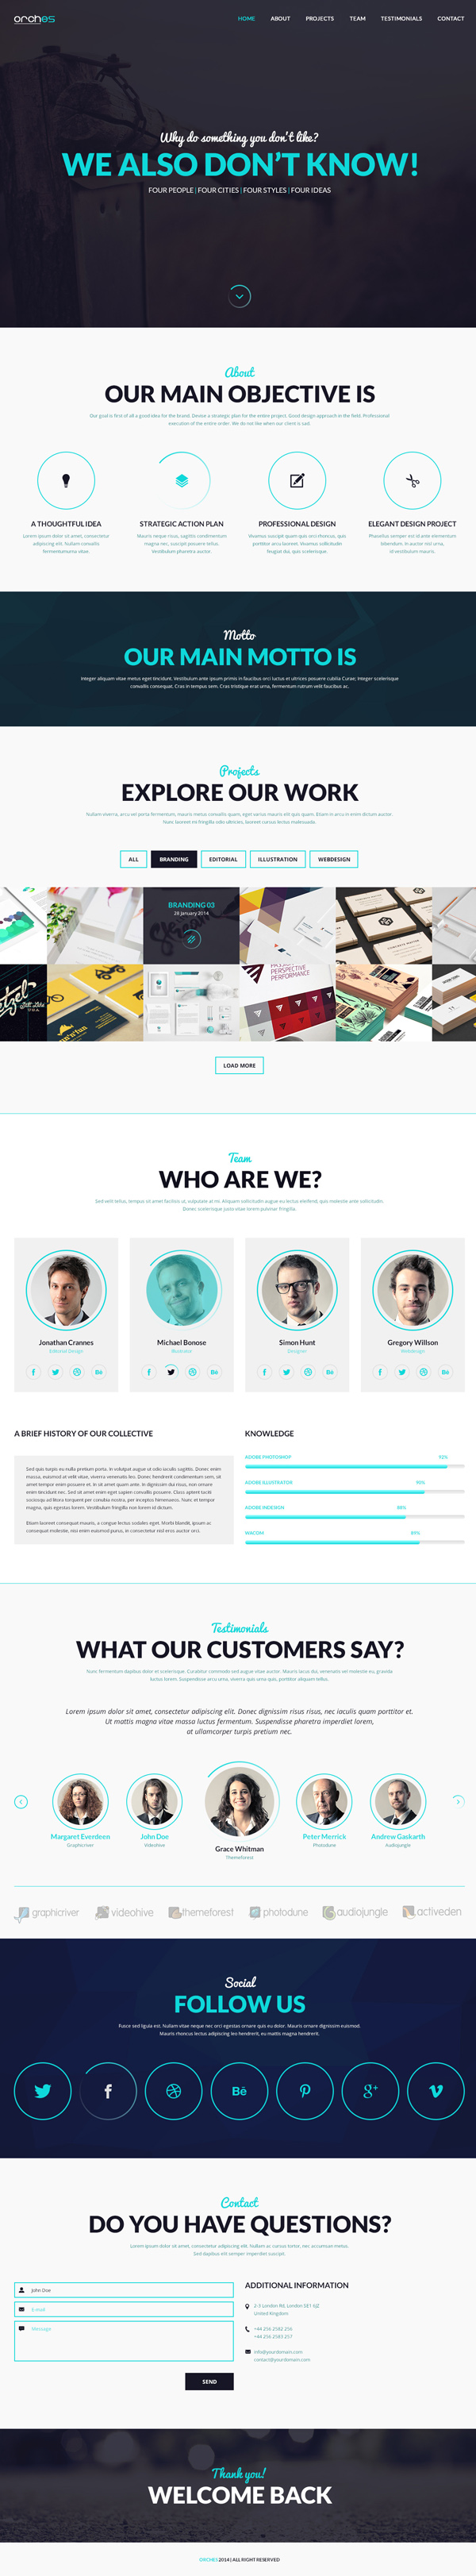 Orches PSD Theme - One Page HTML5 Template